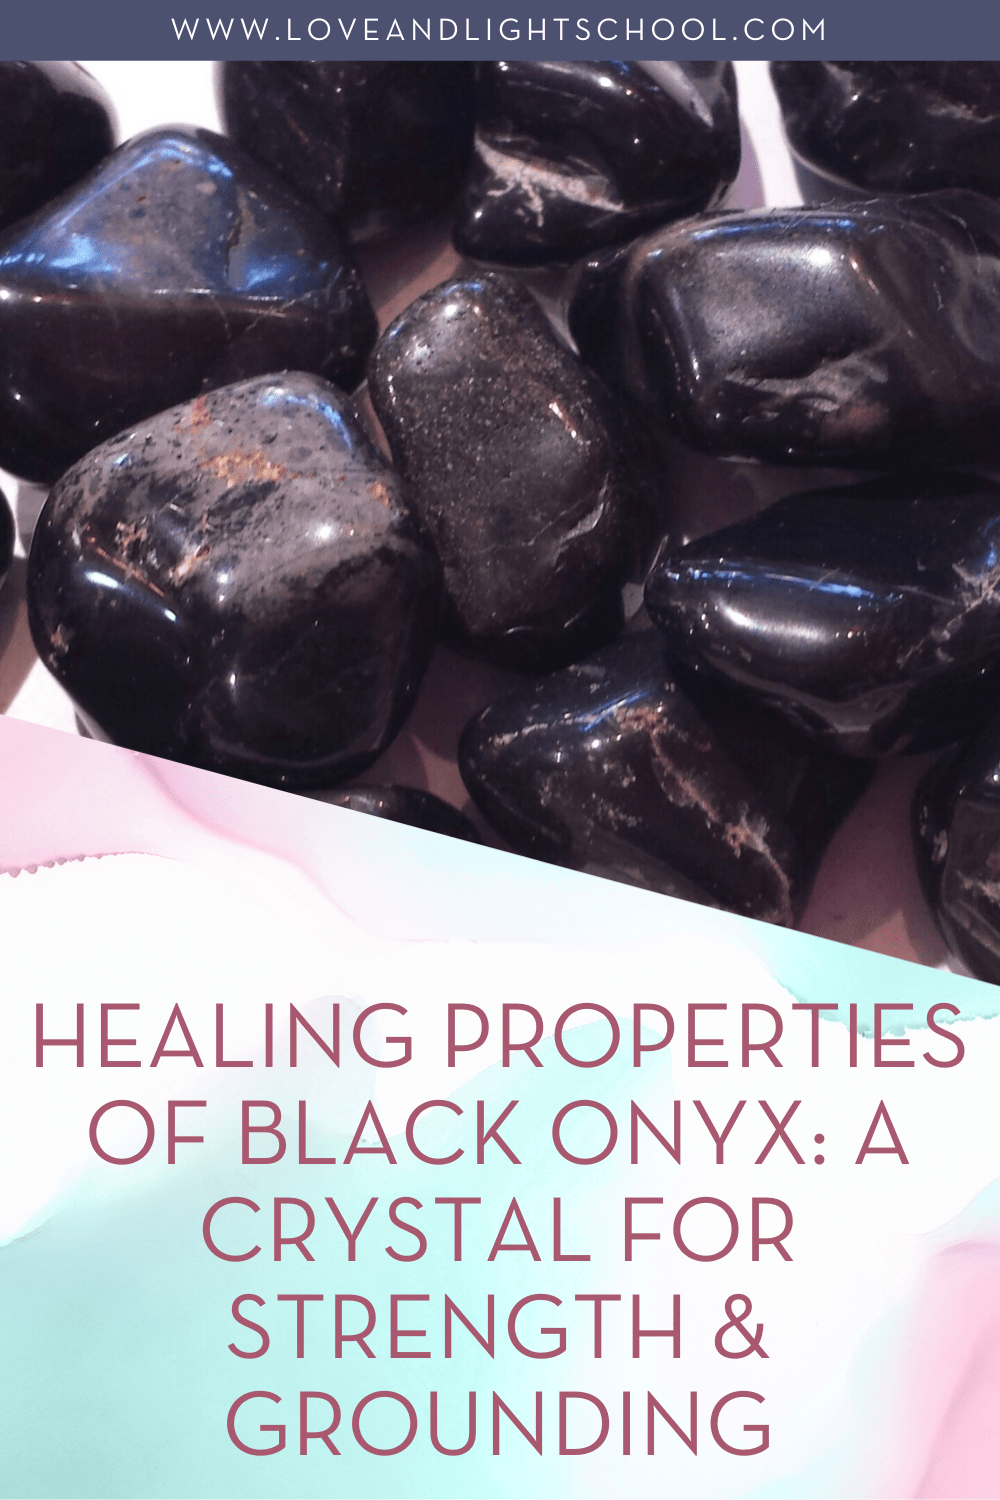 Healing Properties of Black Onyx: A Crystal for Strength & Gorunding